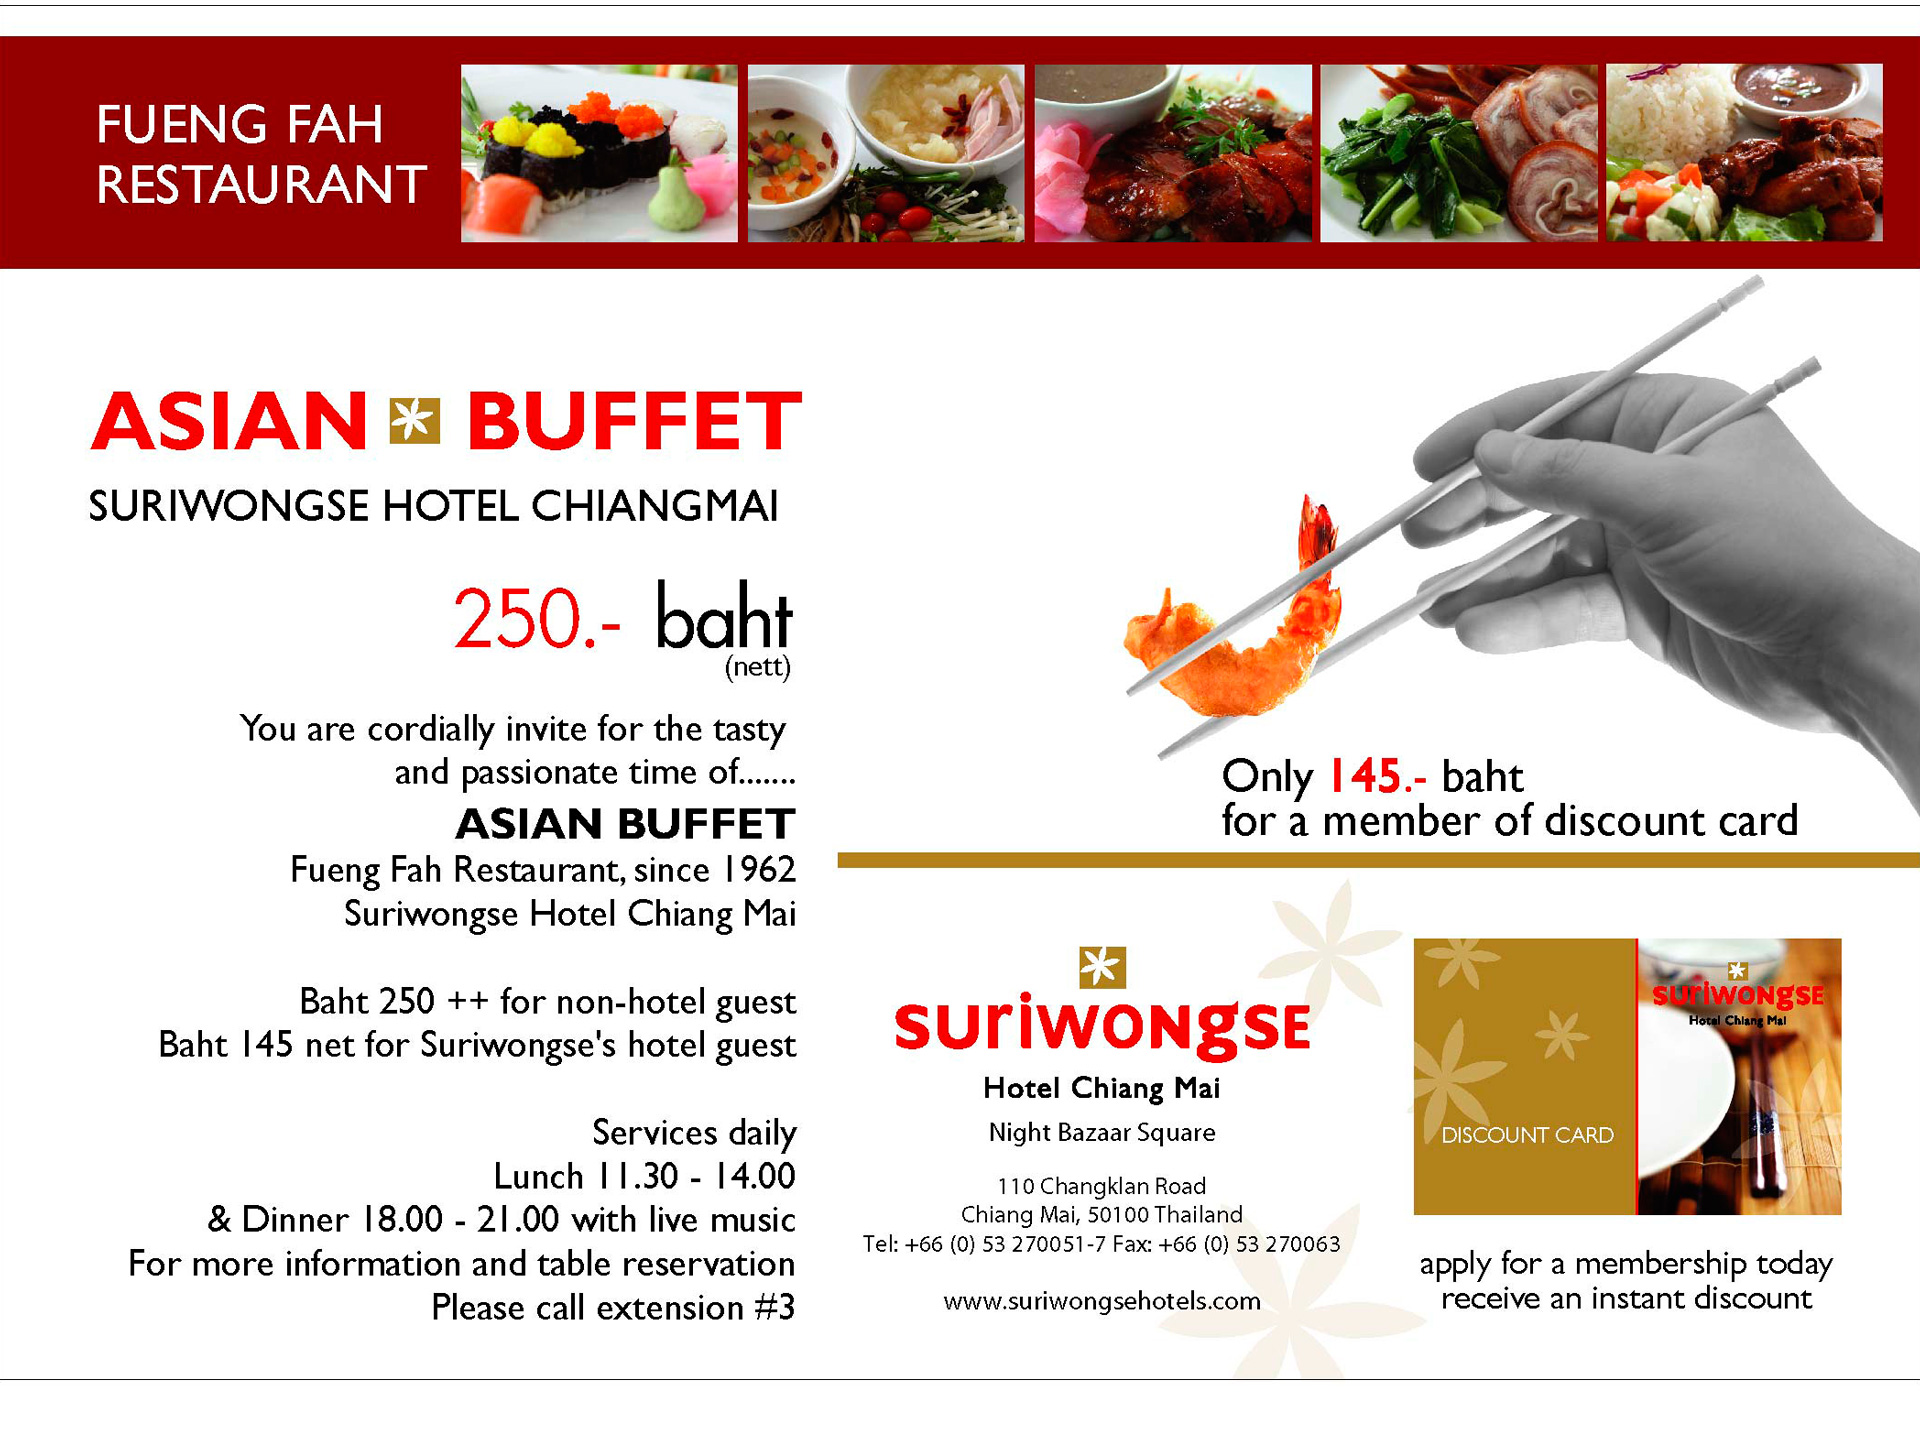 cid for asian buffet suriwongse hotel